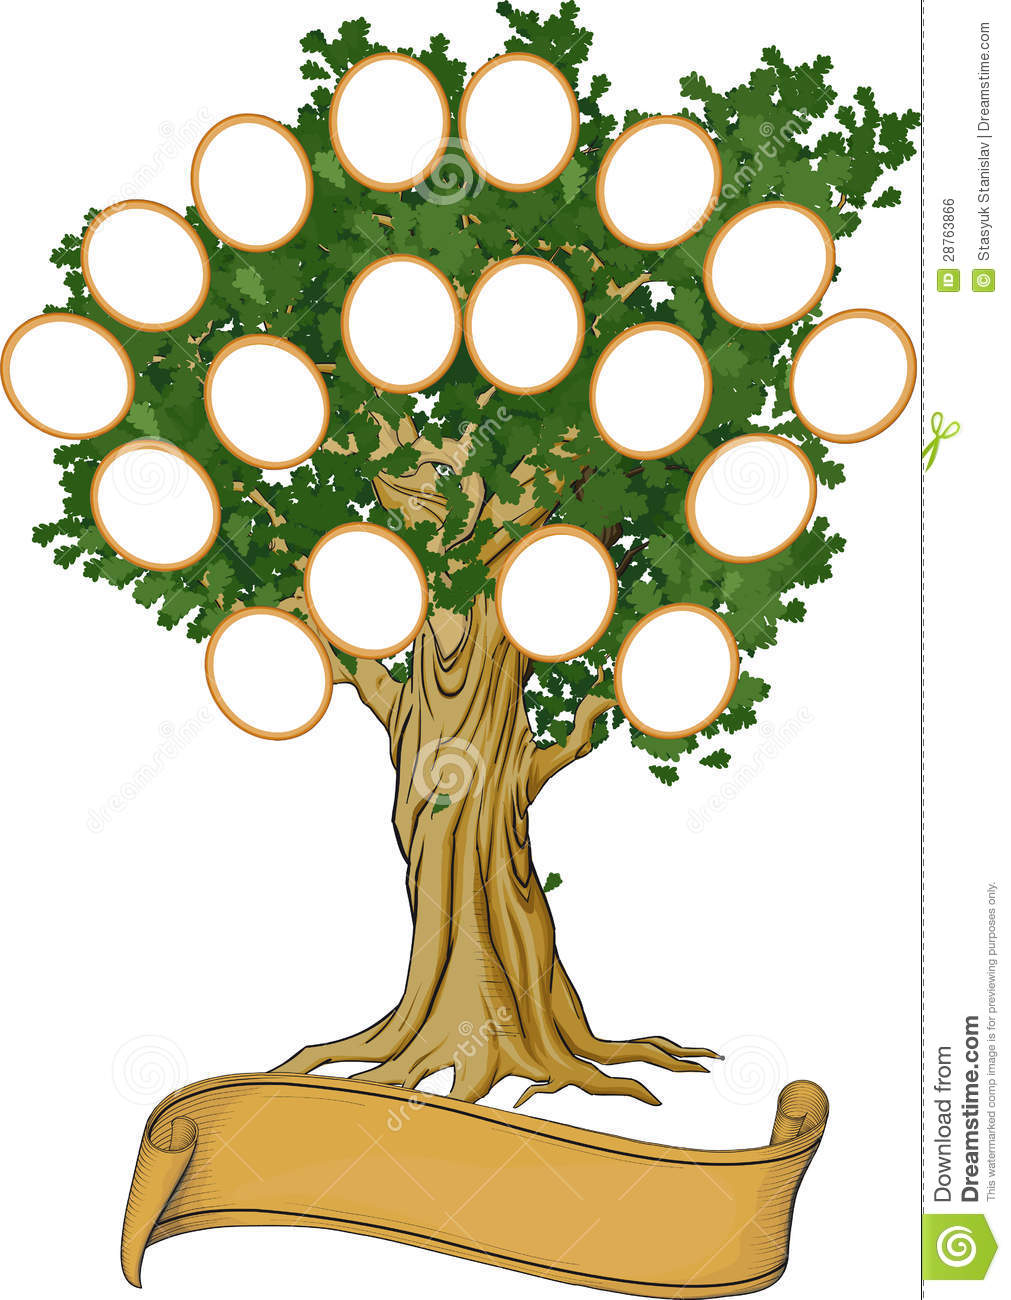 Family tree stock vector. Illustration of isolated ...